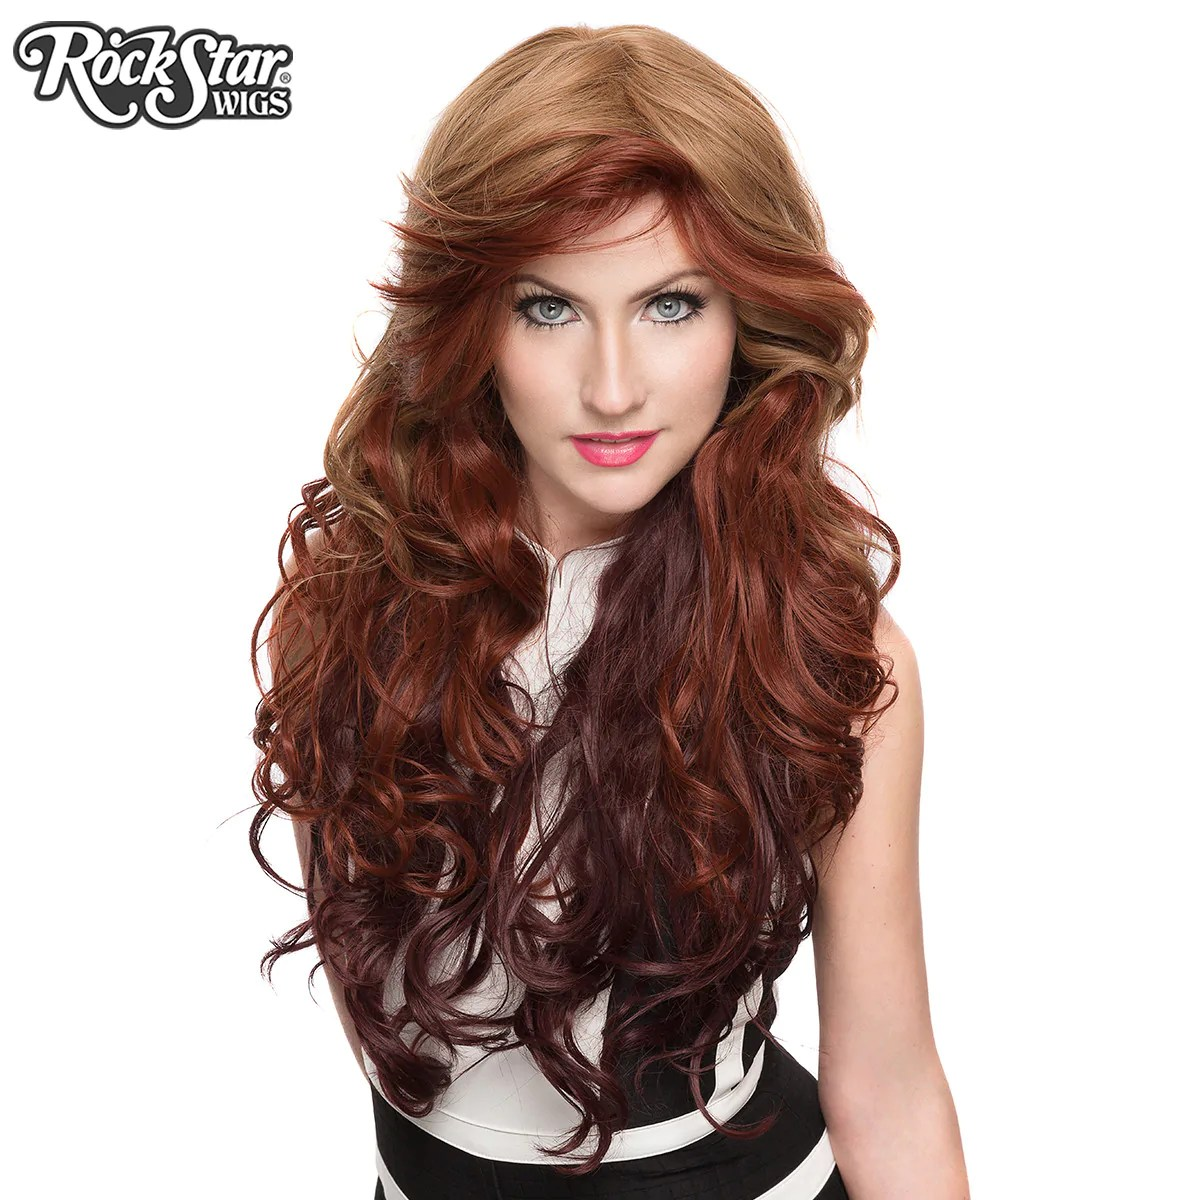 rockstar wigs triflect collection